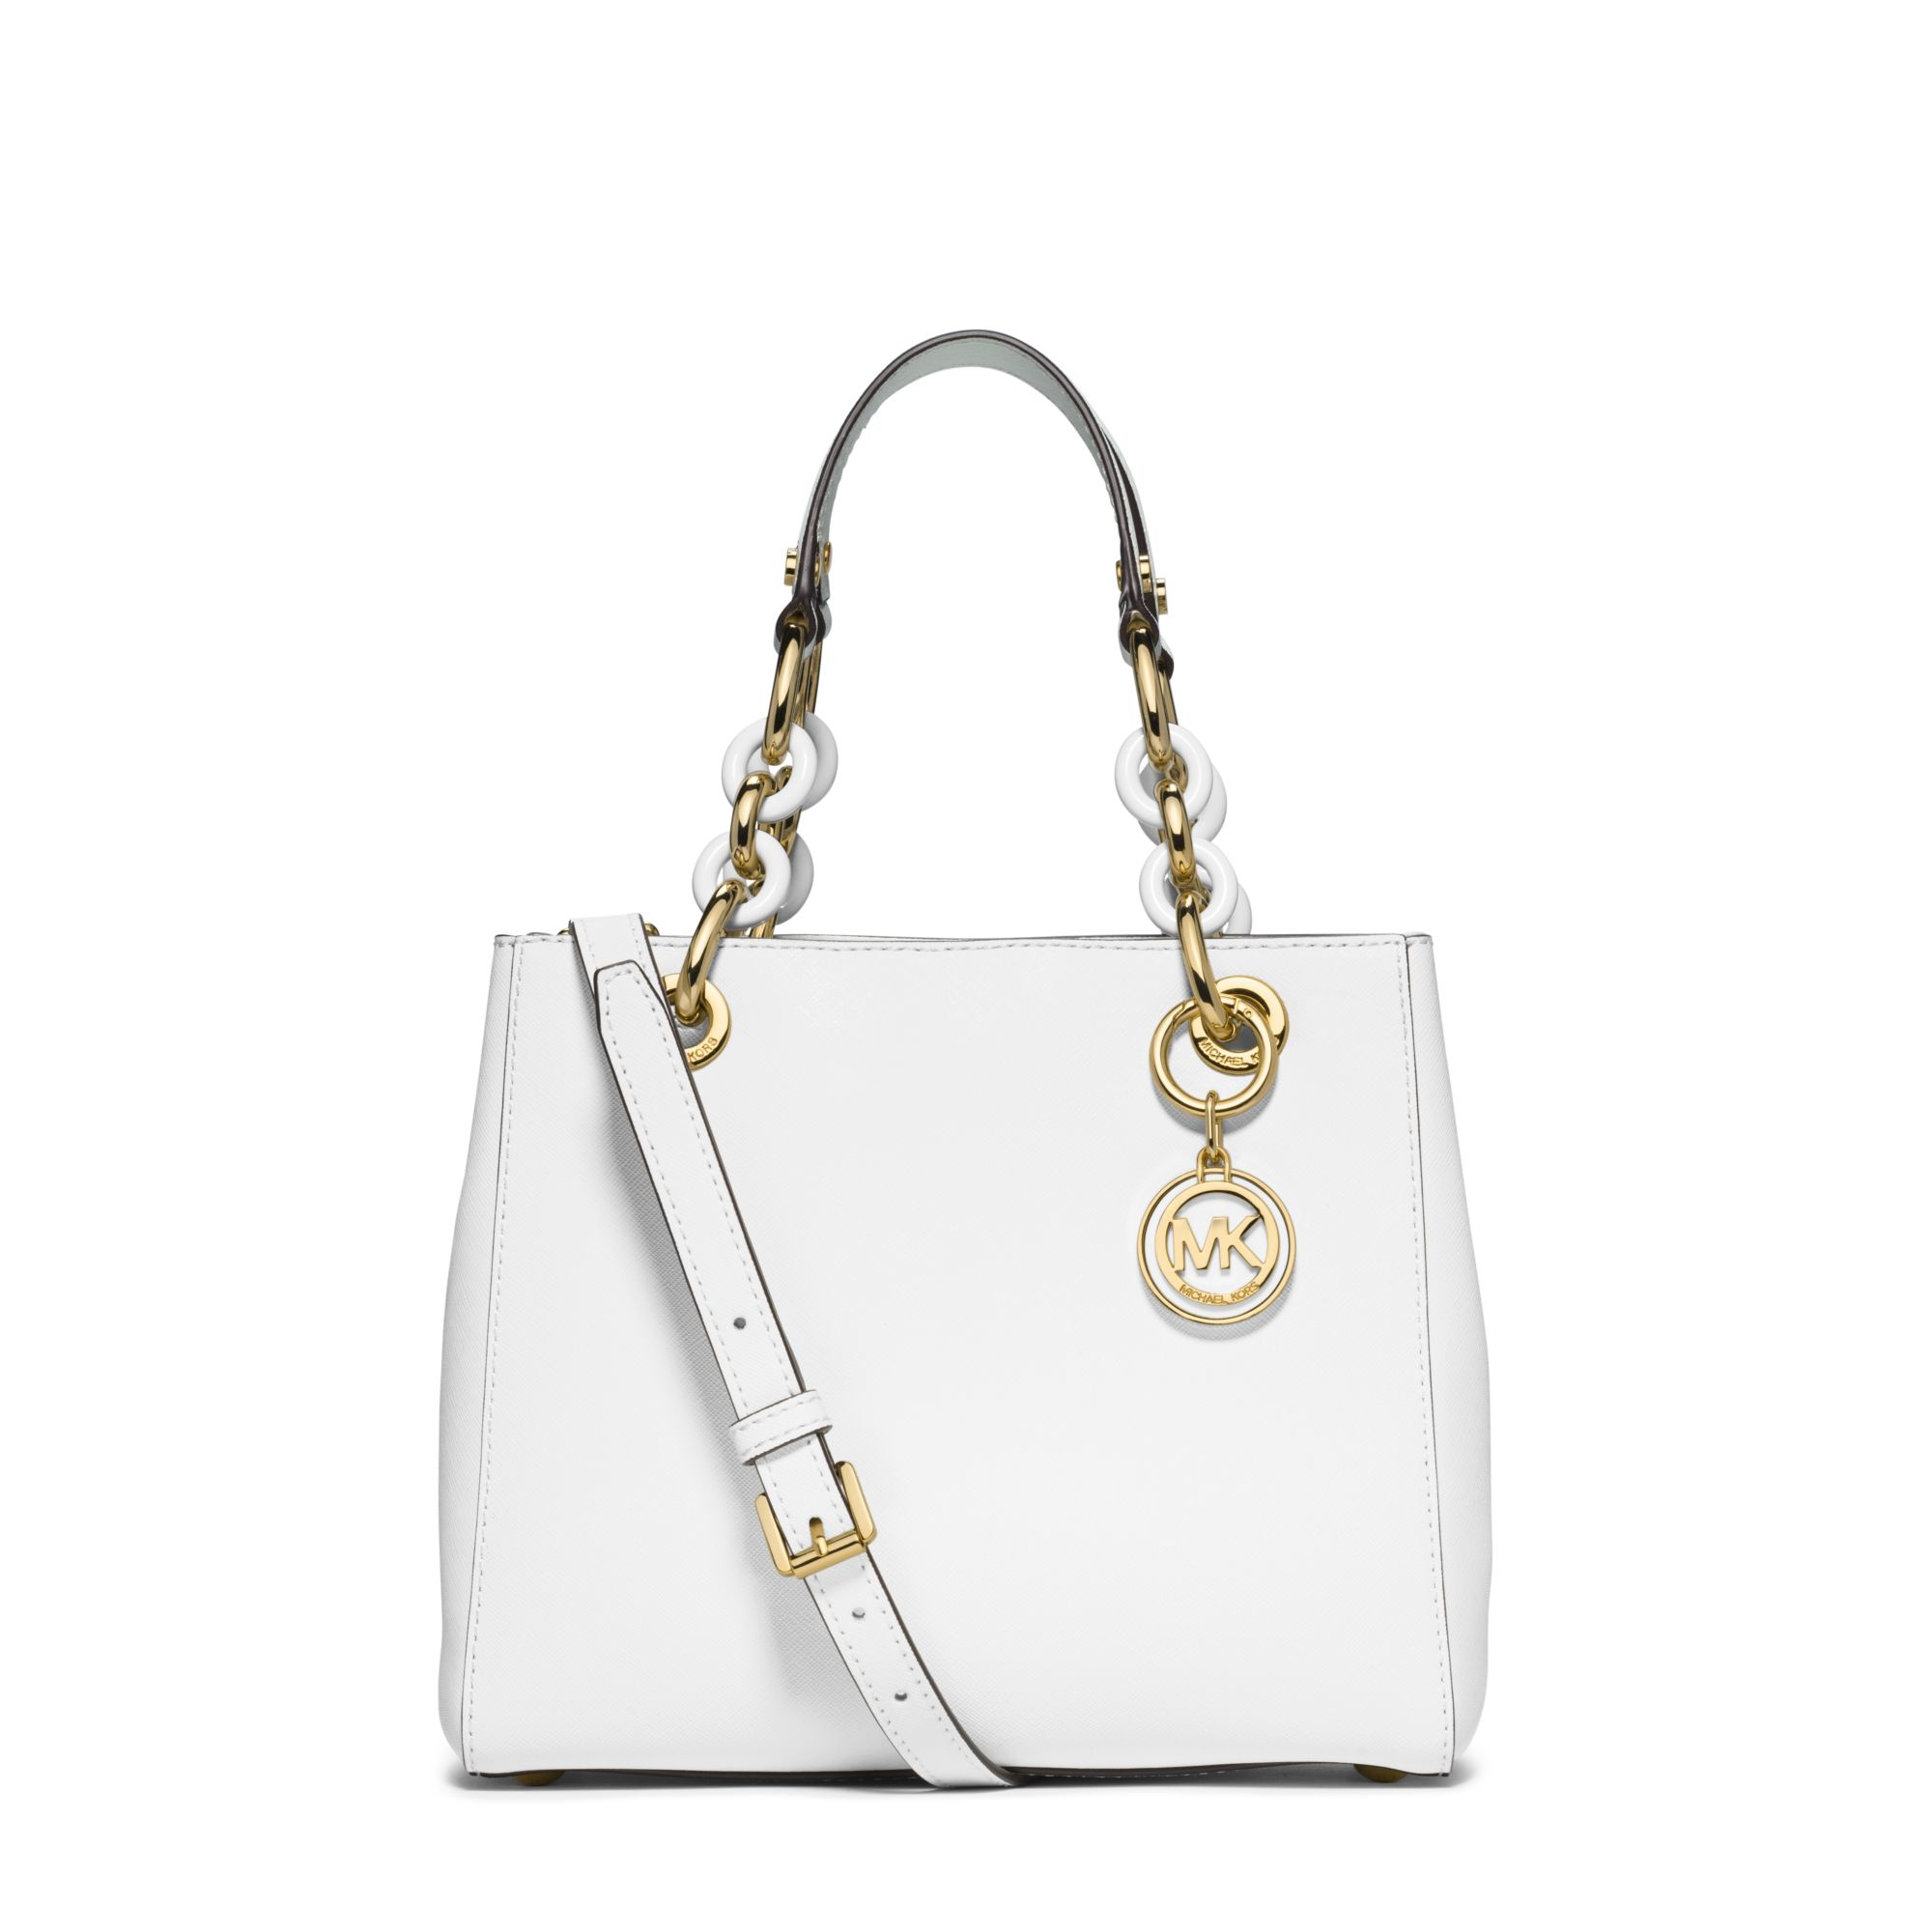 69e9487a34f30c Michael Kors Cynthia Small Leather Satchel in White - Lyst